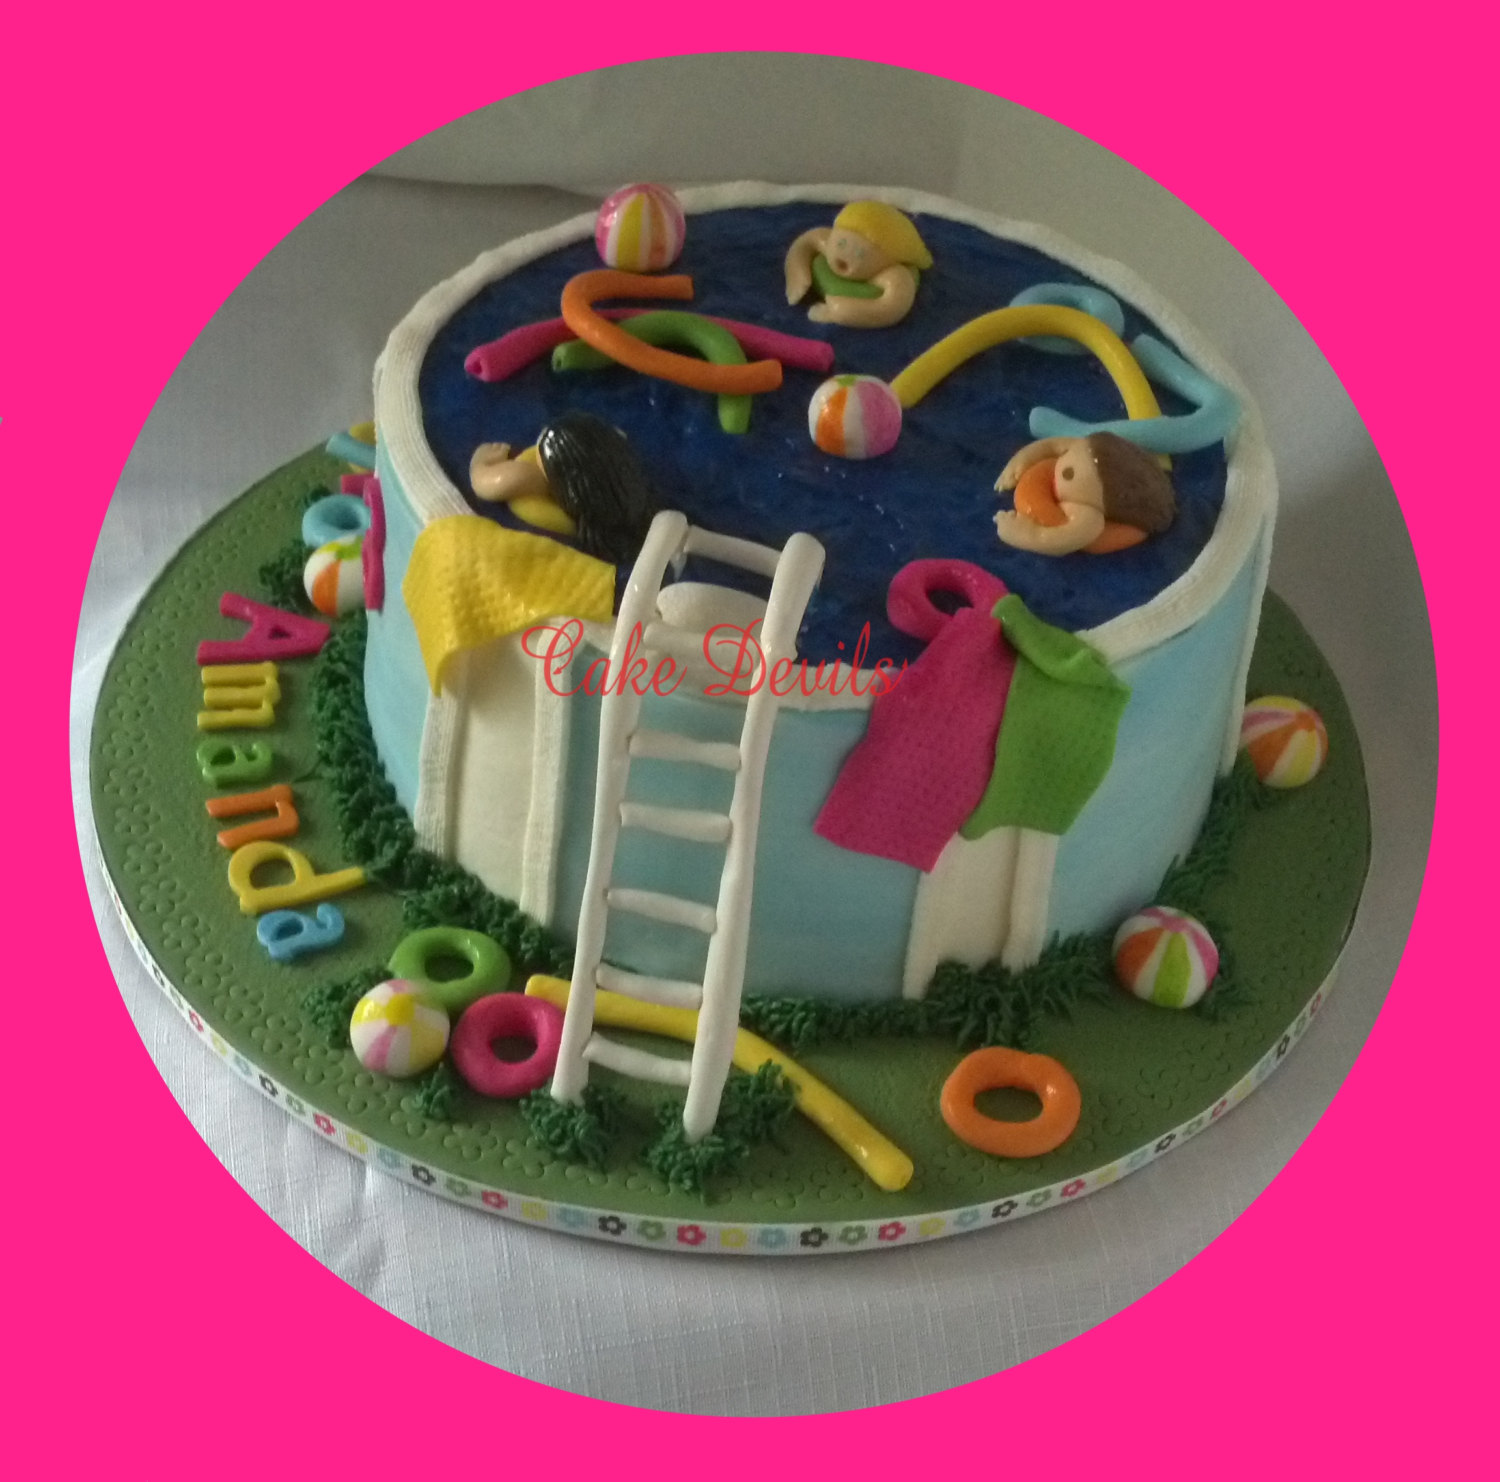 Pool Party Cake Topper Kit Fondant Handmade Edible Beach ball